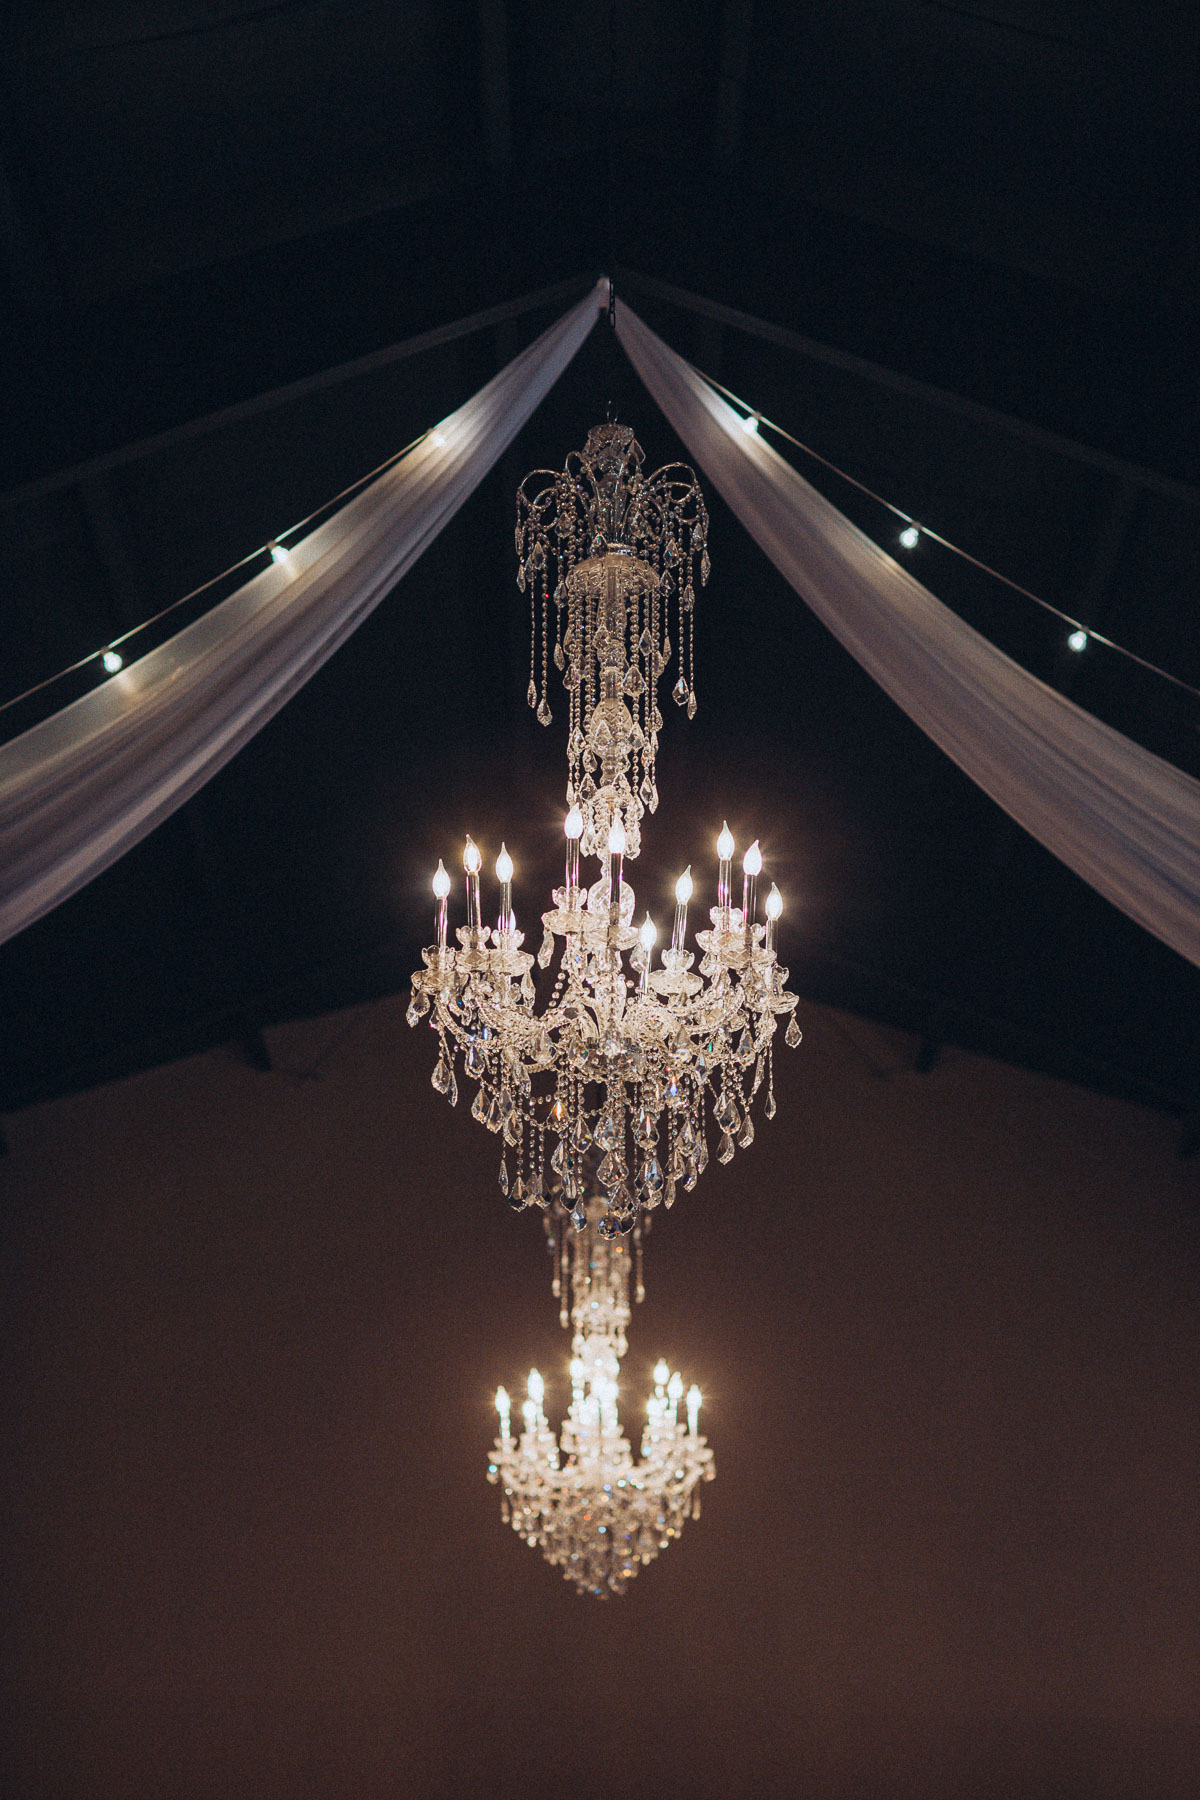 Chandeliers hang above the main hall at Wedgewood Black Forest.